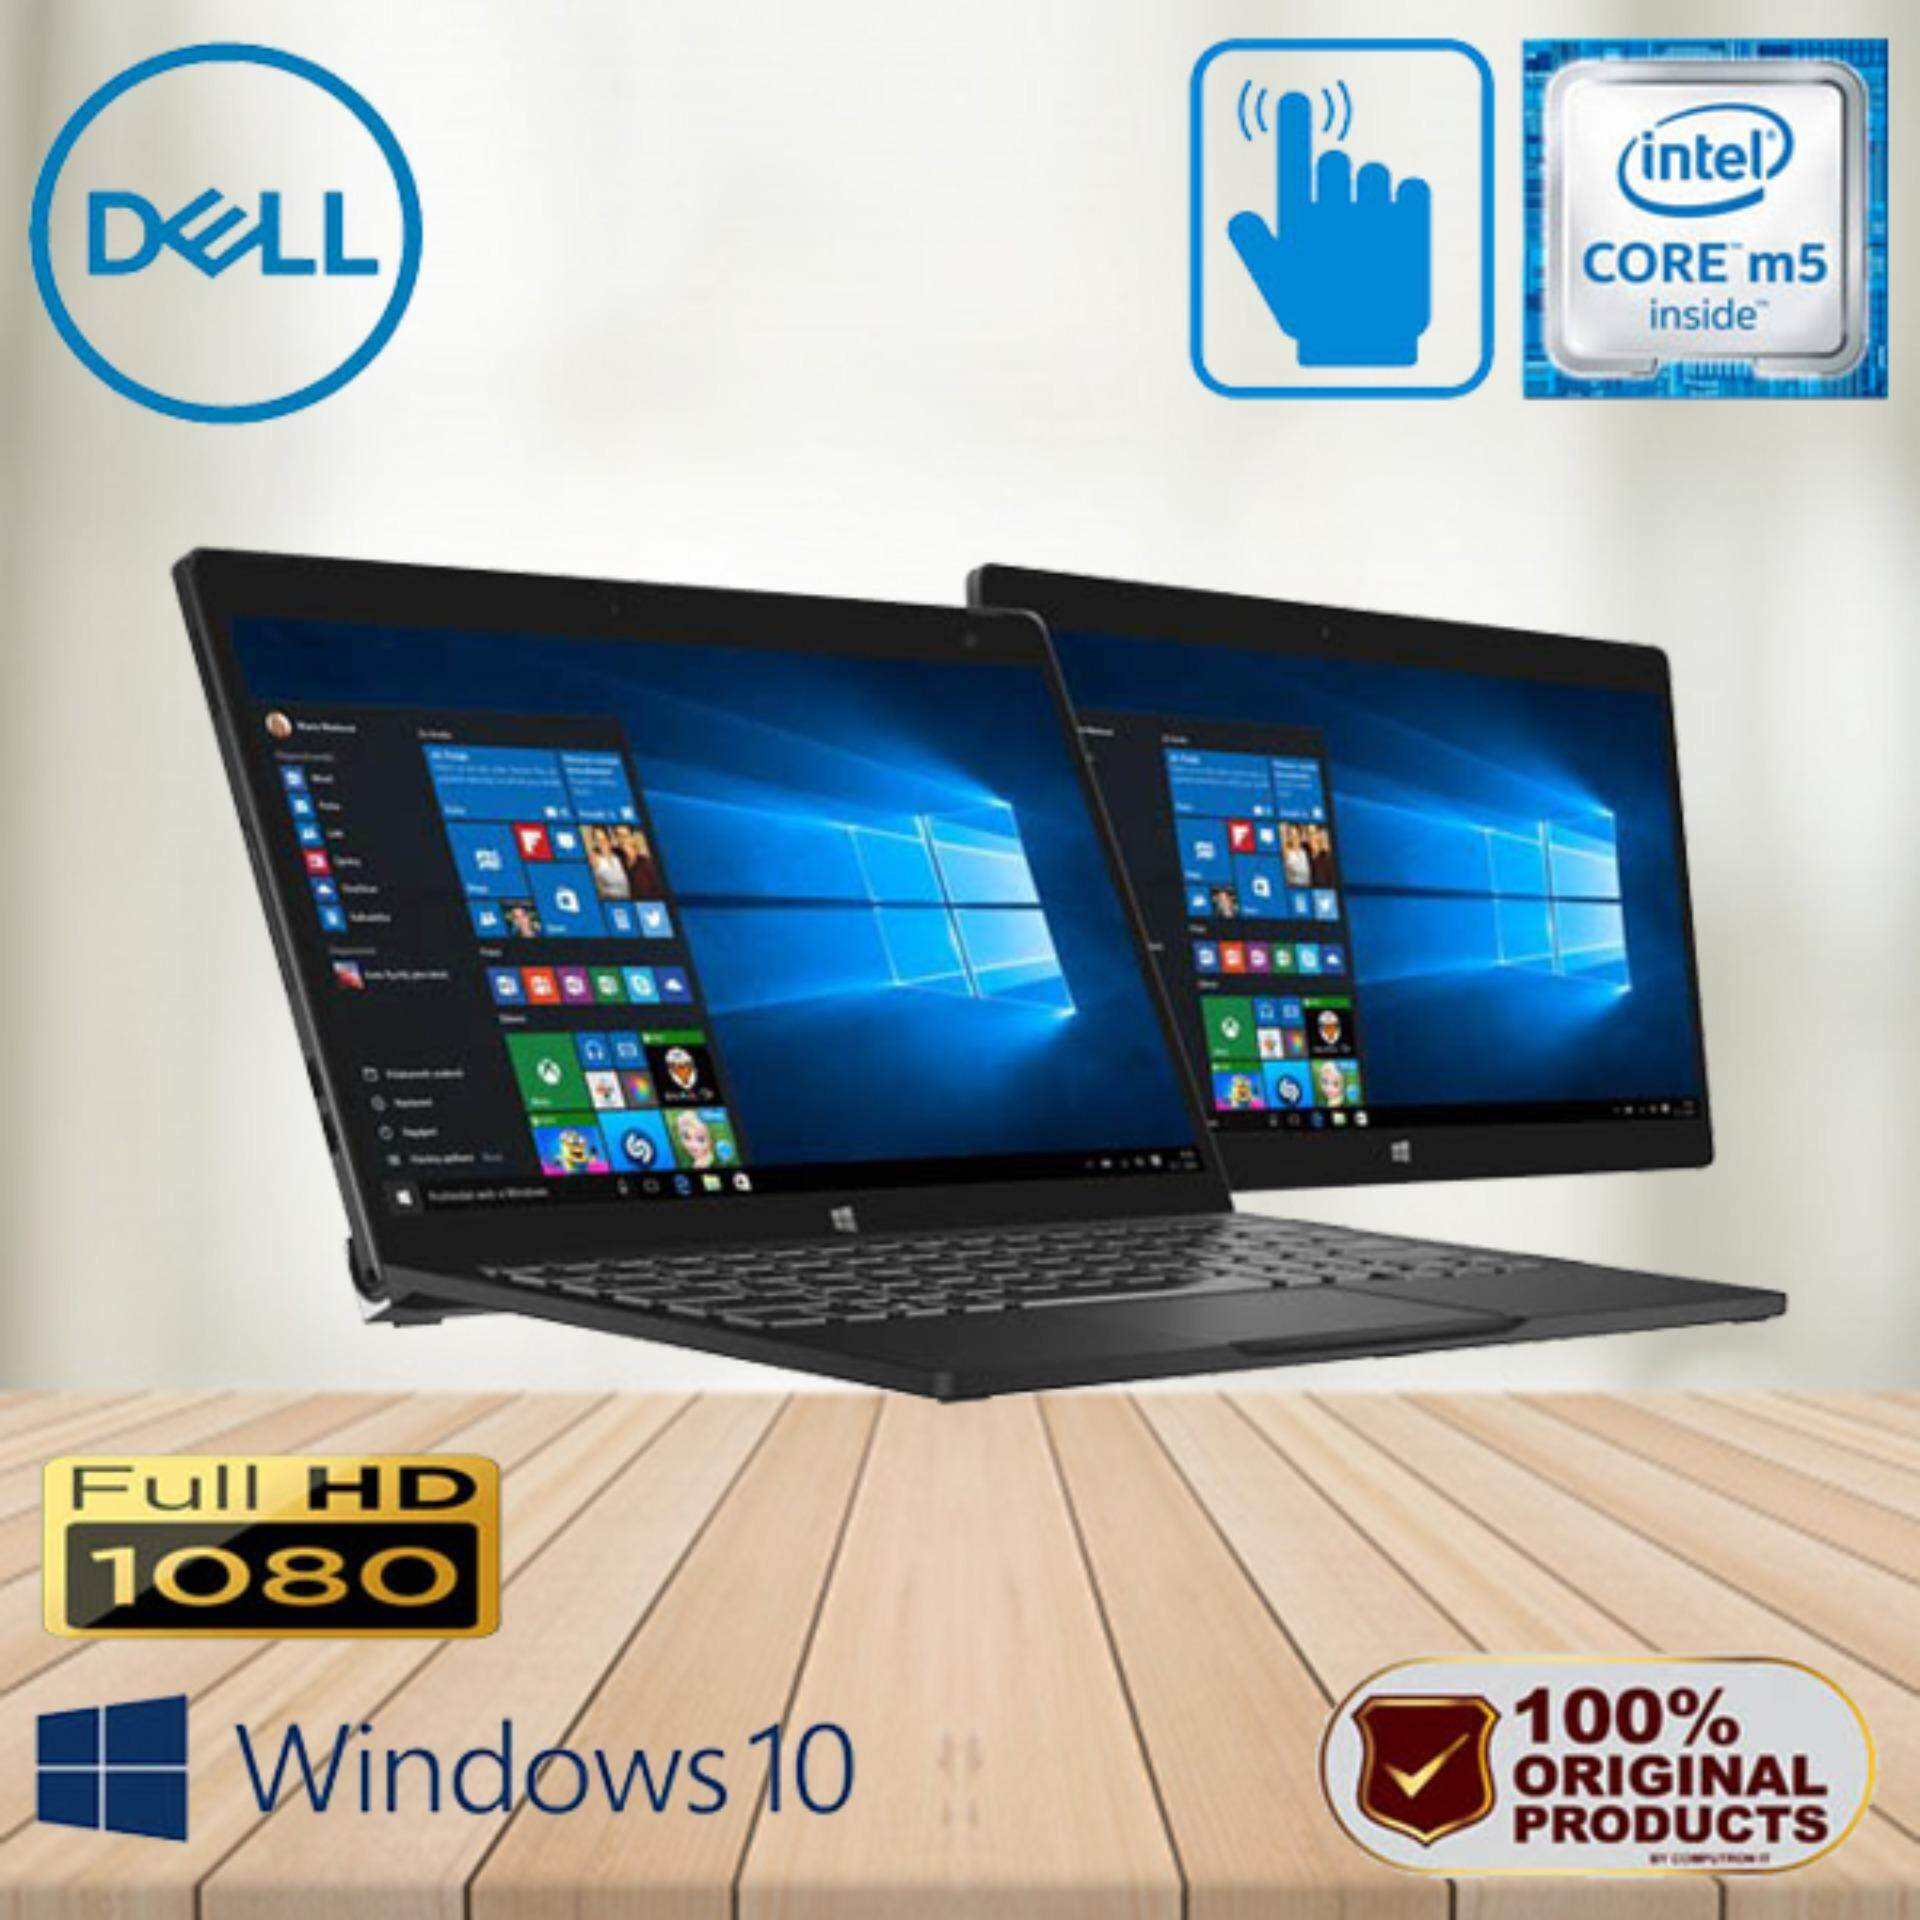 Dell Latitude Ultrabook 7275 Fhd Touchscreen Surface [core M5 6th Generation] 1 Years Warranty By Computron It Market.